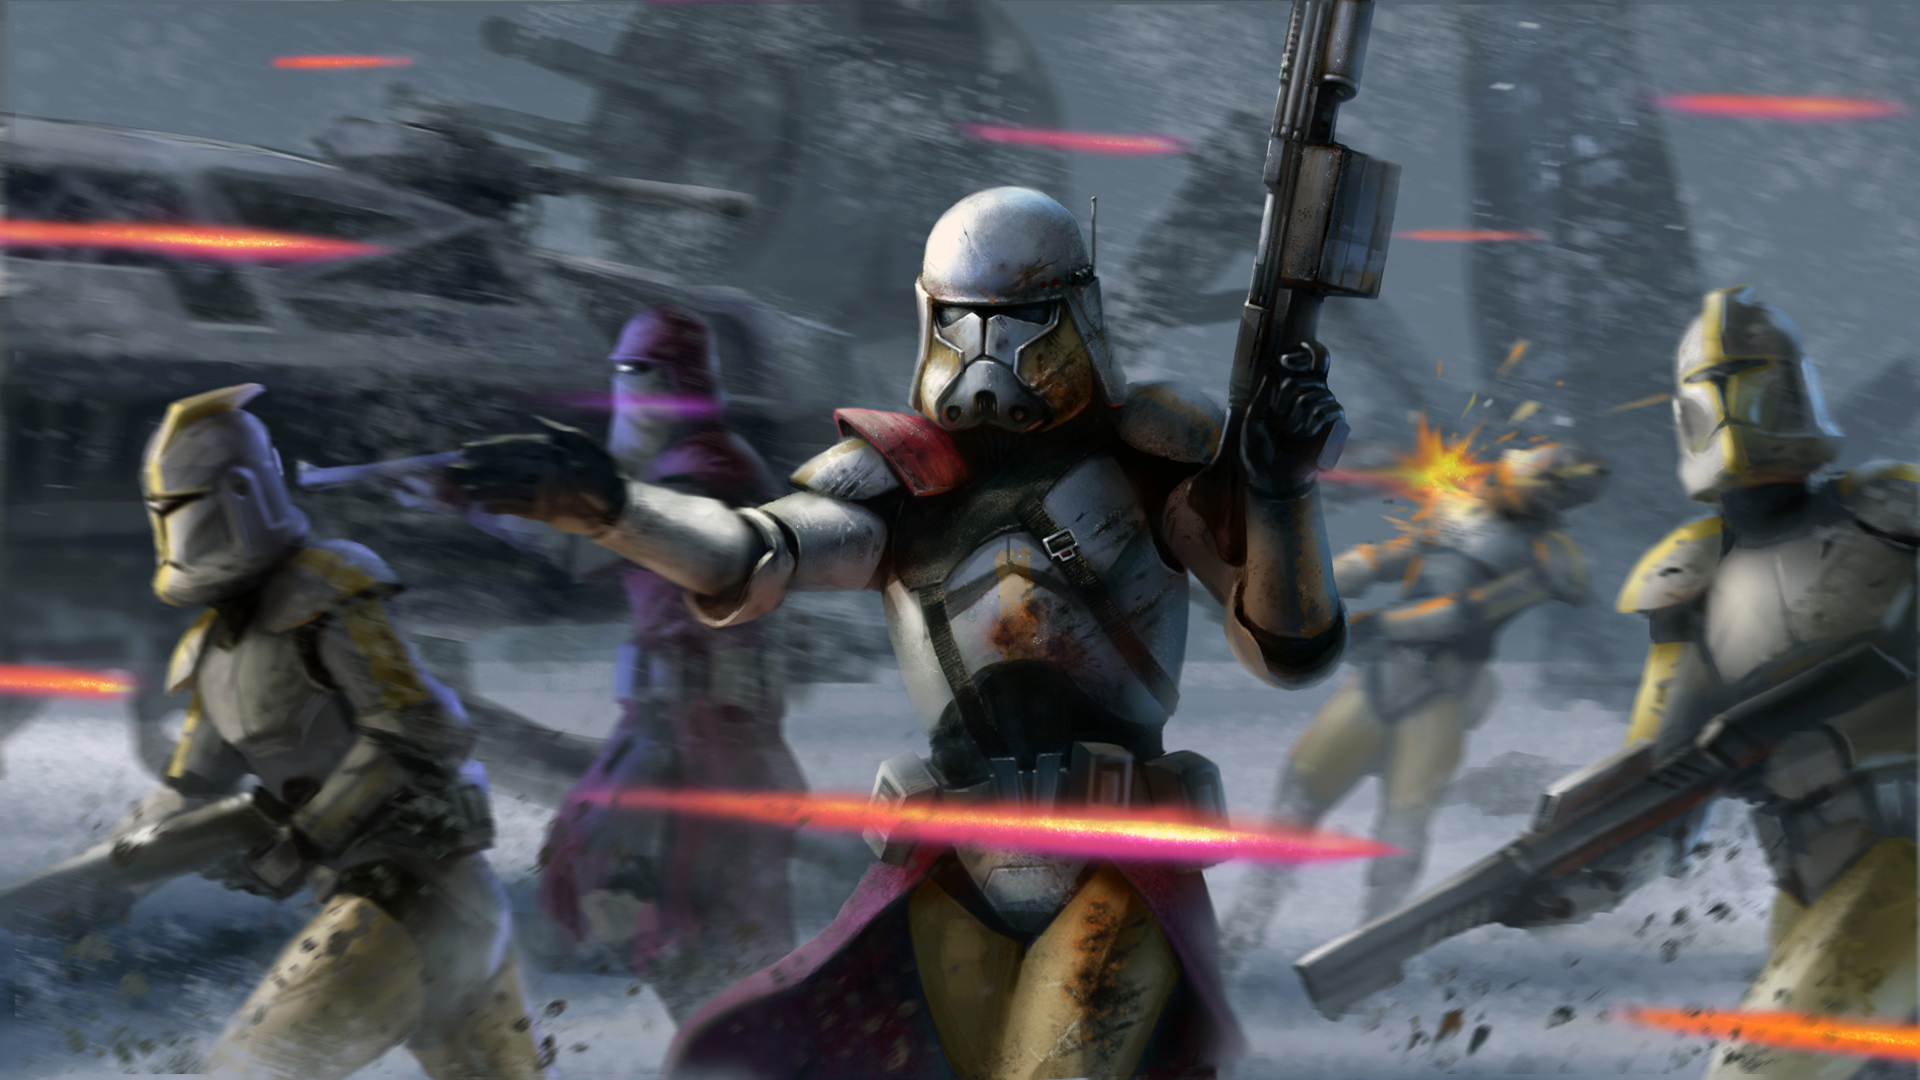 Star Wars The Clone Wars Wallpaper: The Clone Guard Full HD Wallpaper And Background Image